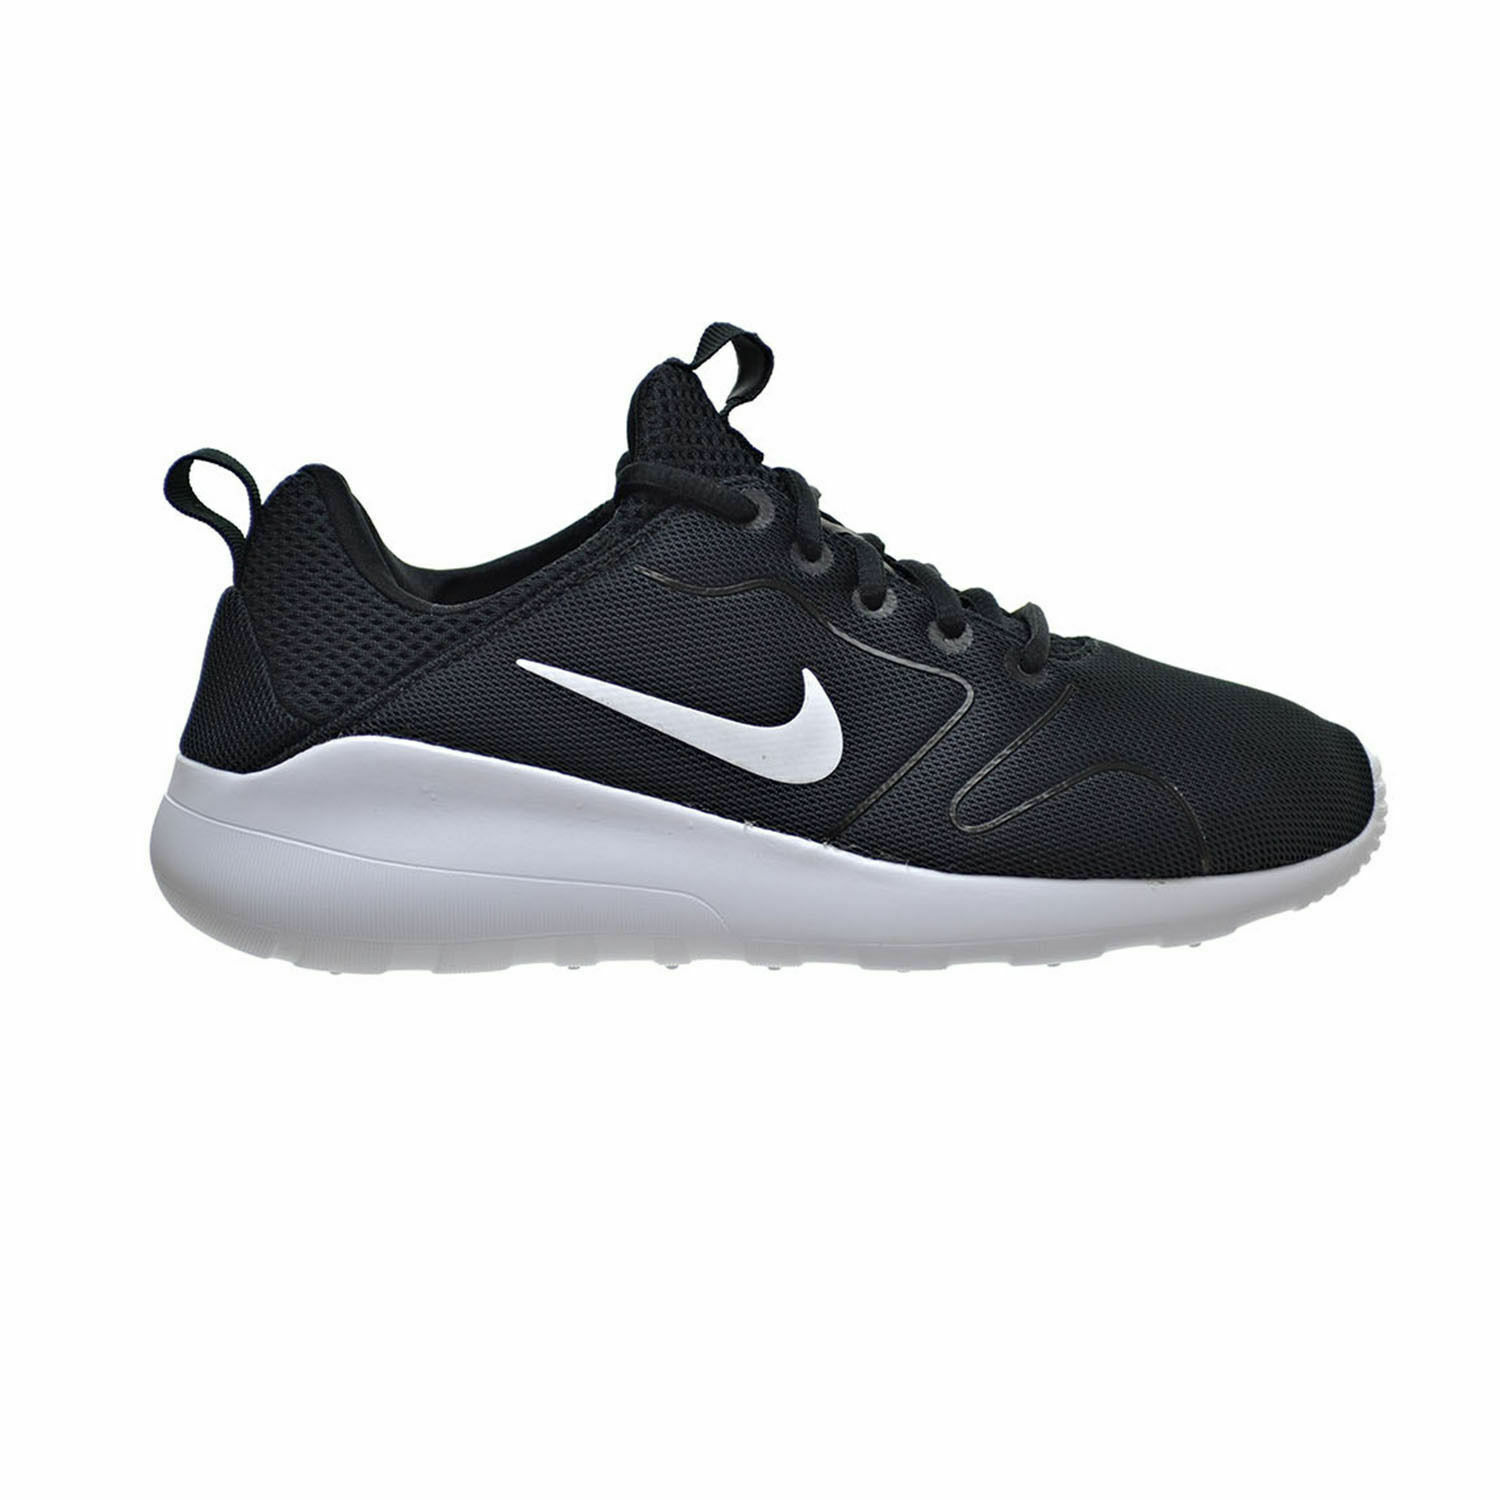 NIKE MEN'S KAISHI 2.0 SHOES black white 833411 010